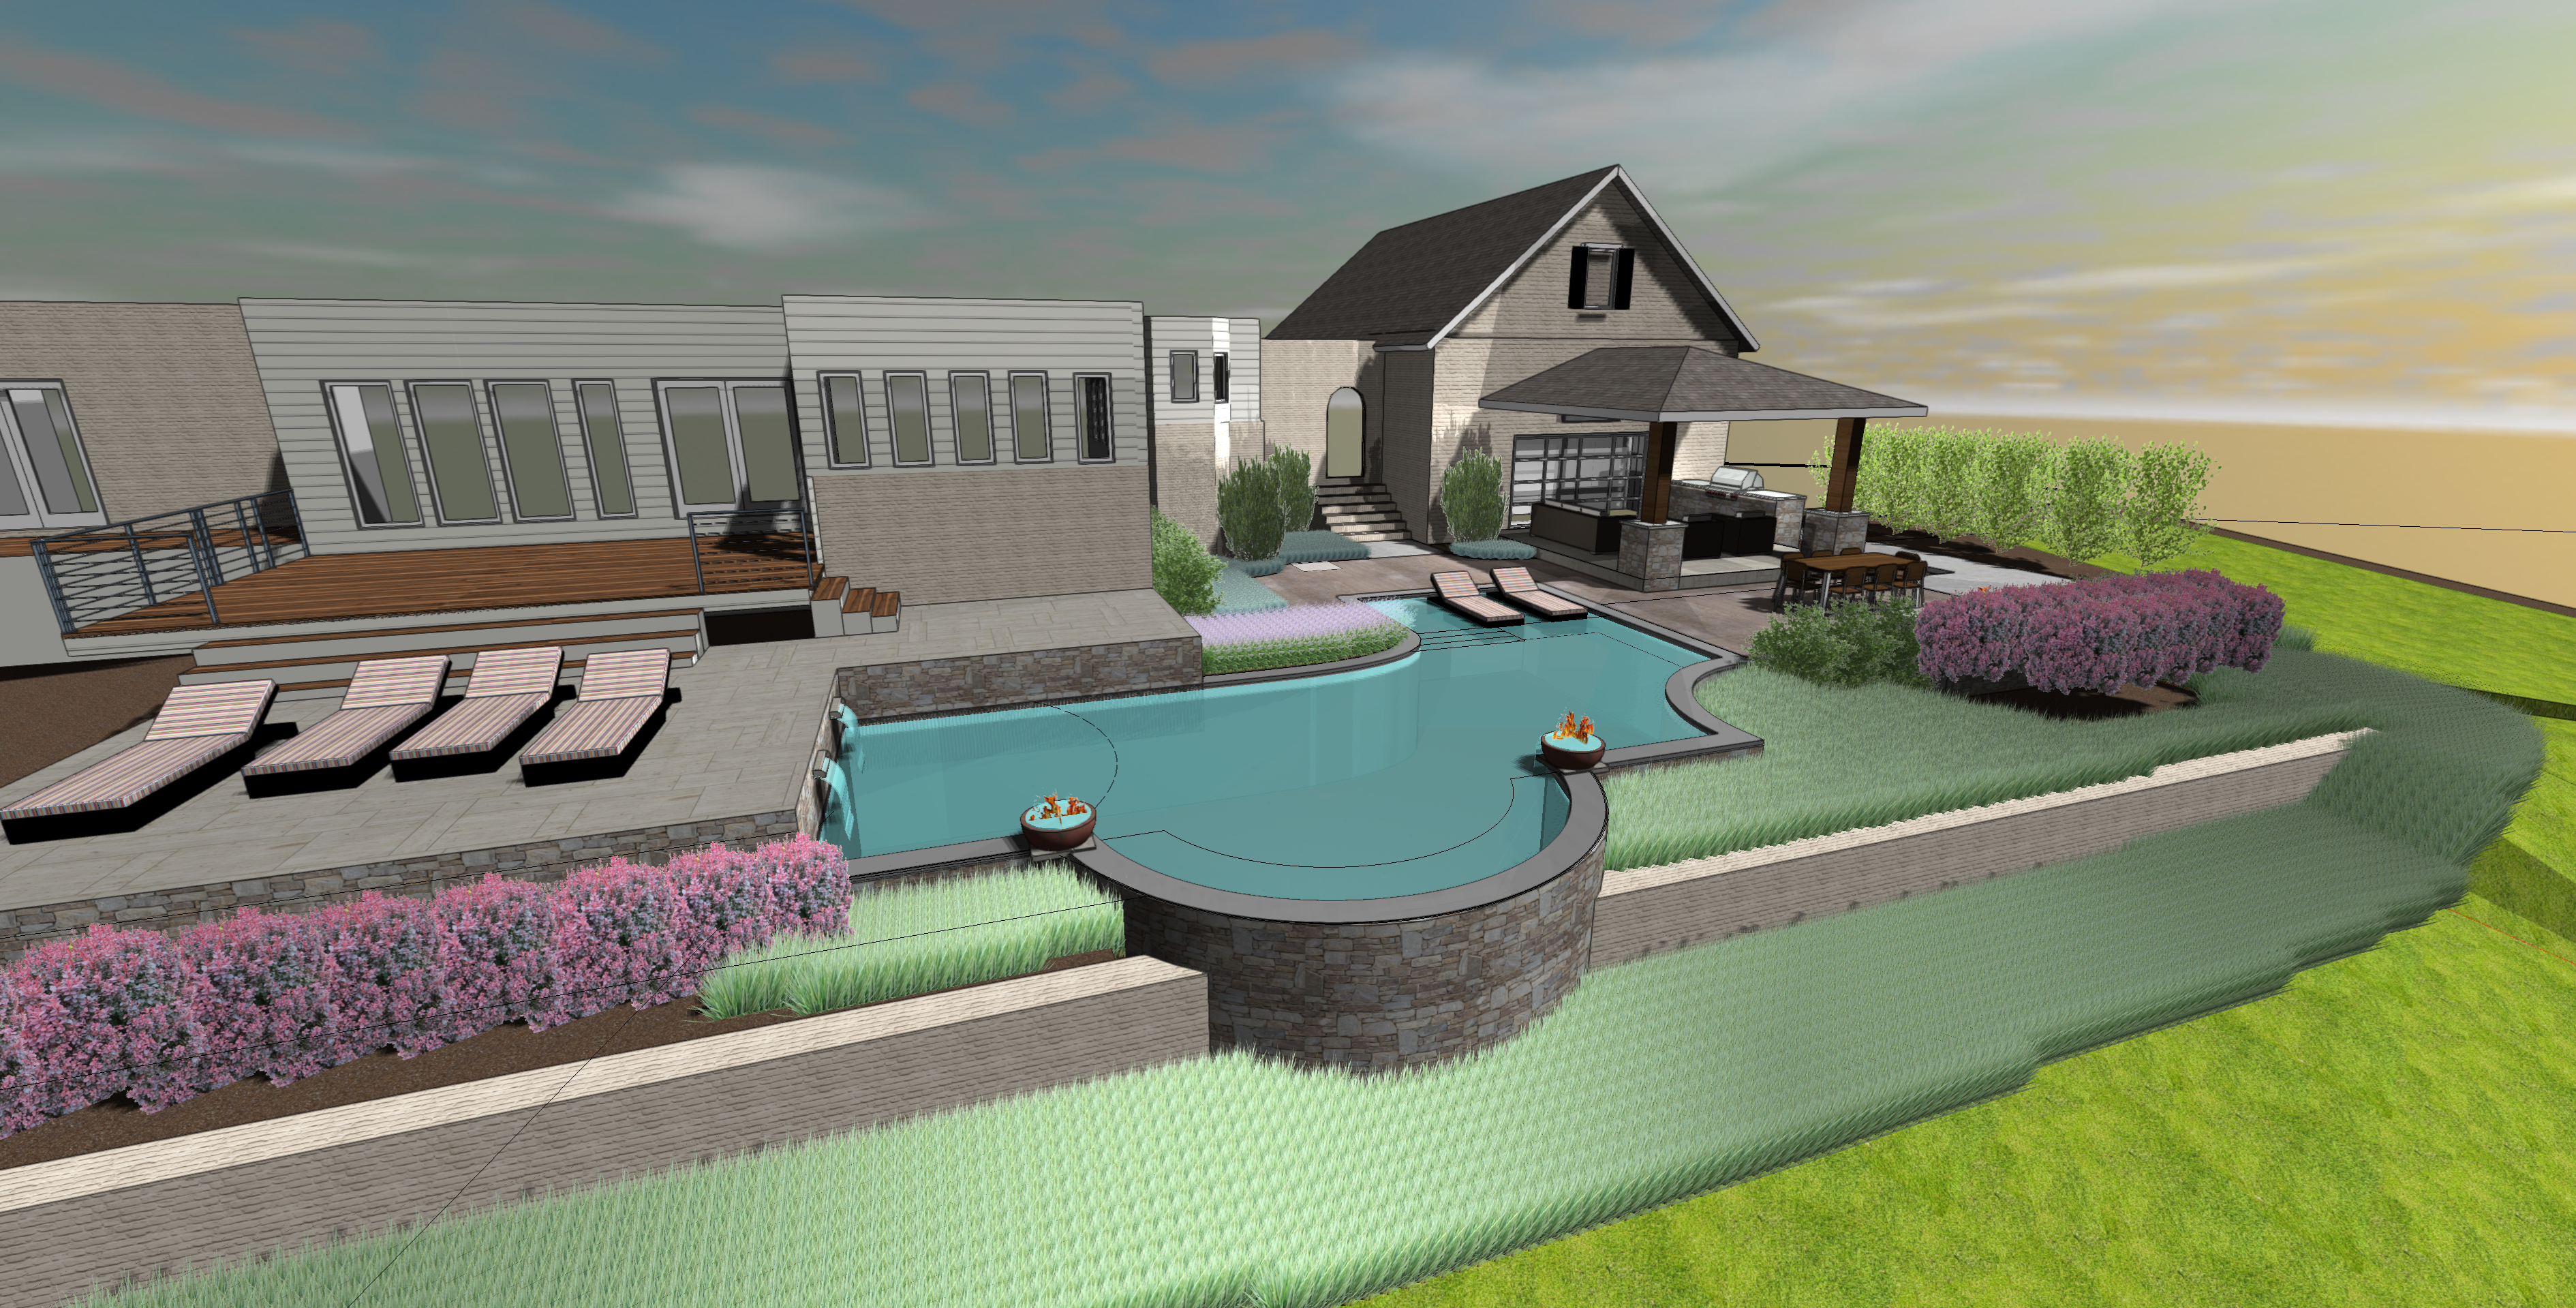 3D Pool Design Back View